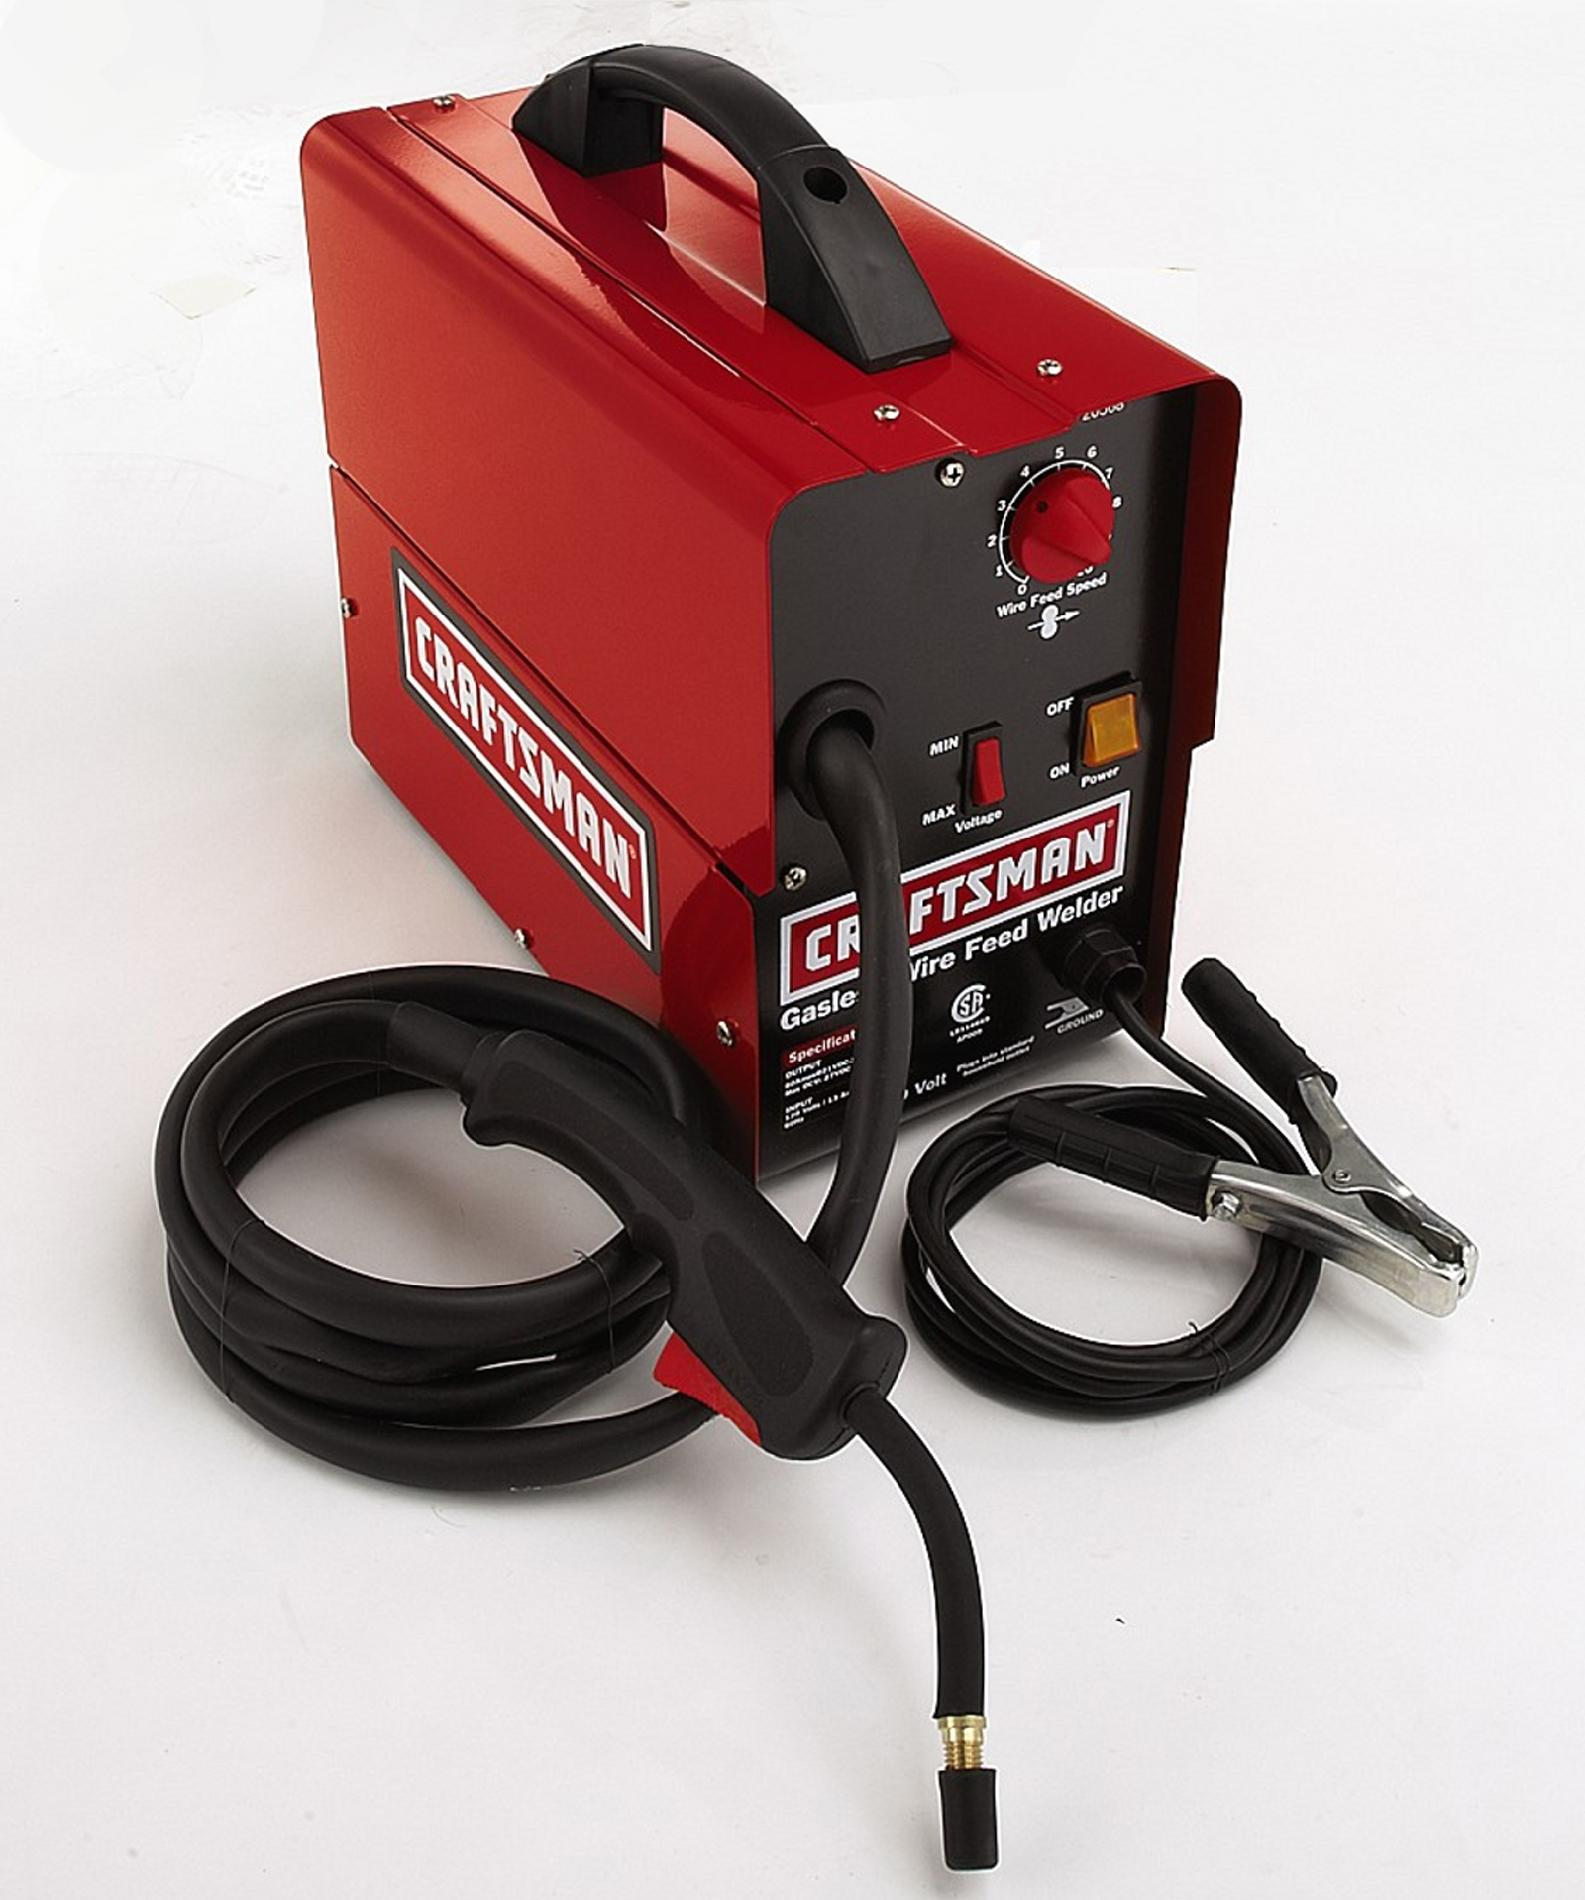 Craftsman Wire Feed Welder, Gasless